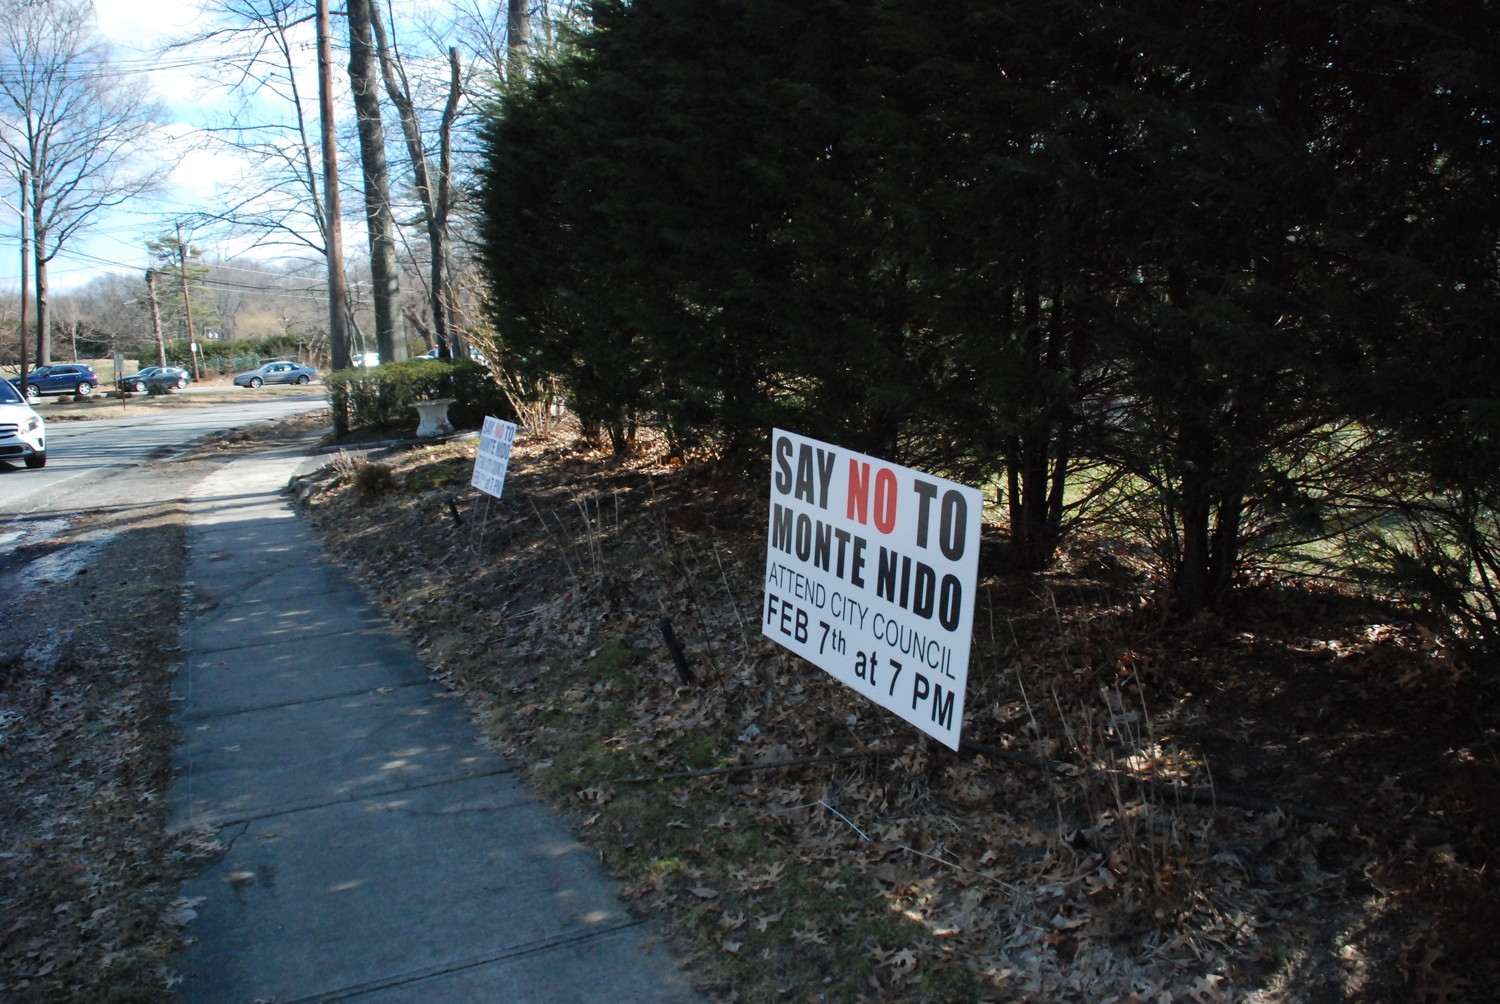 The neighbors of 1 St. Andrews Lane were vocal in their opposition to the proposal to house a group home there. These lawn signs could be seen at most houses on the block.